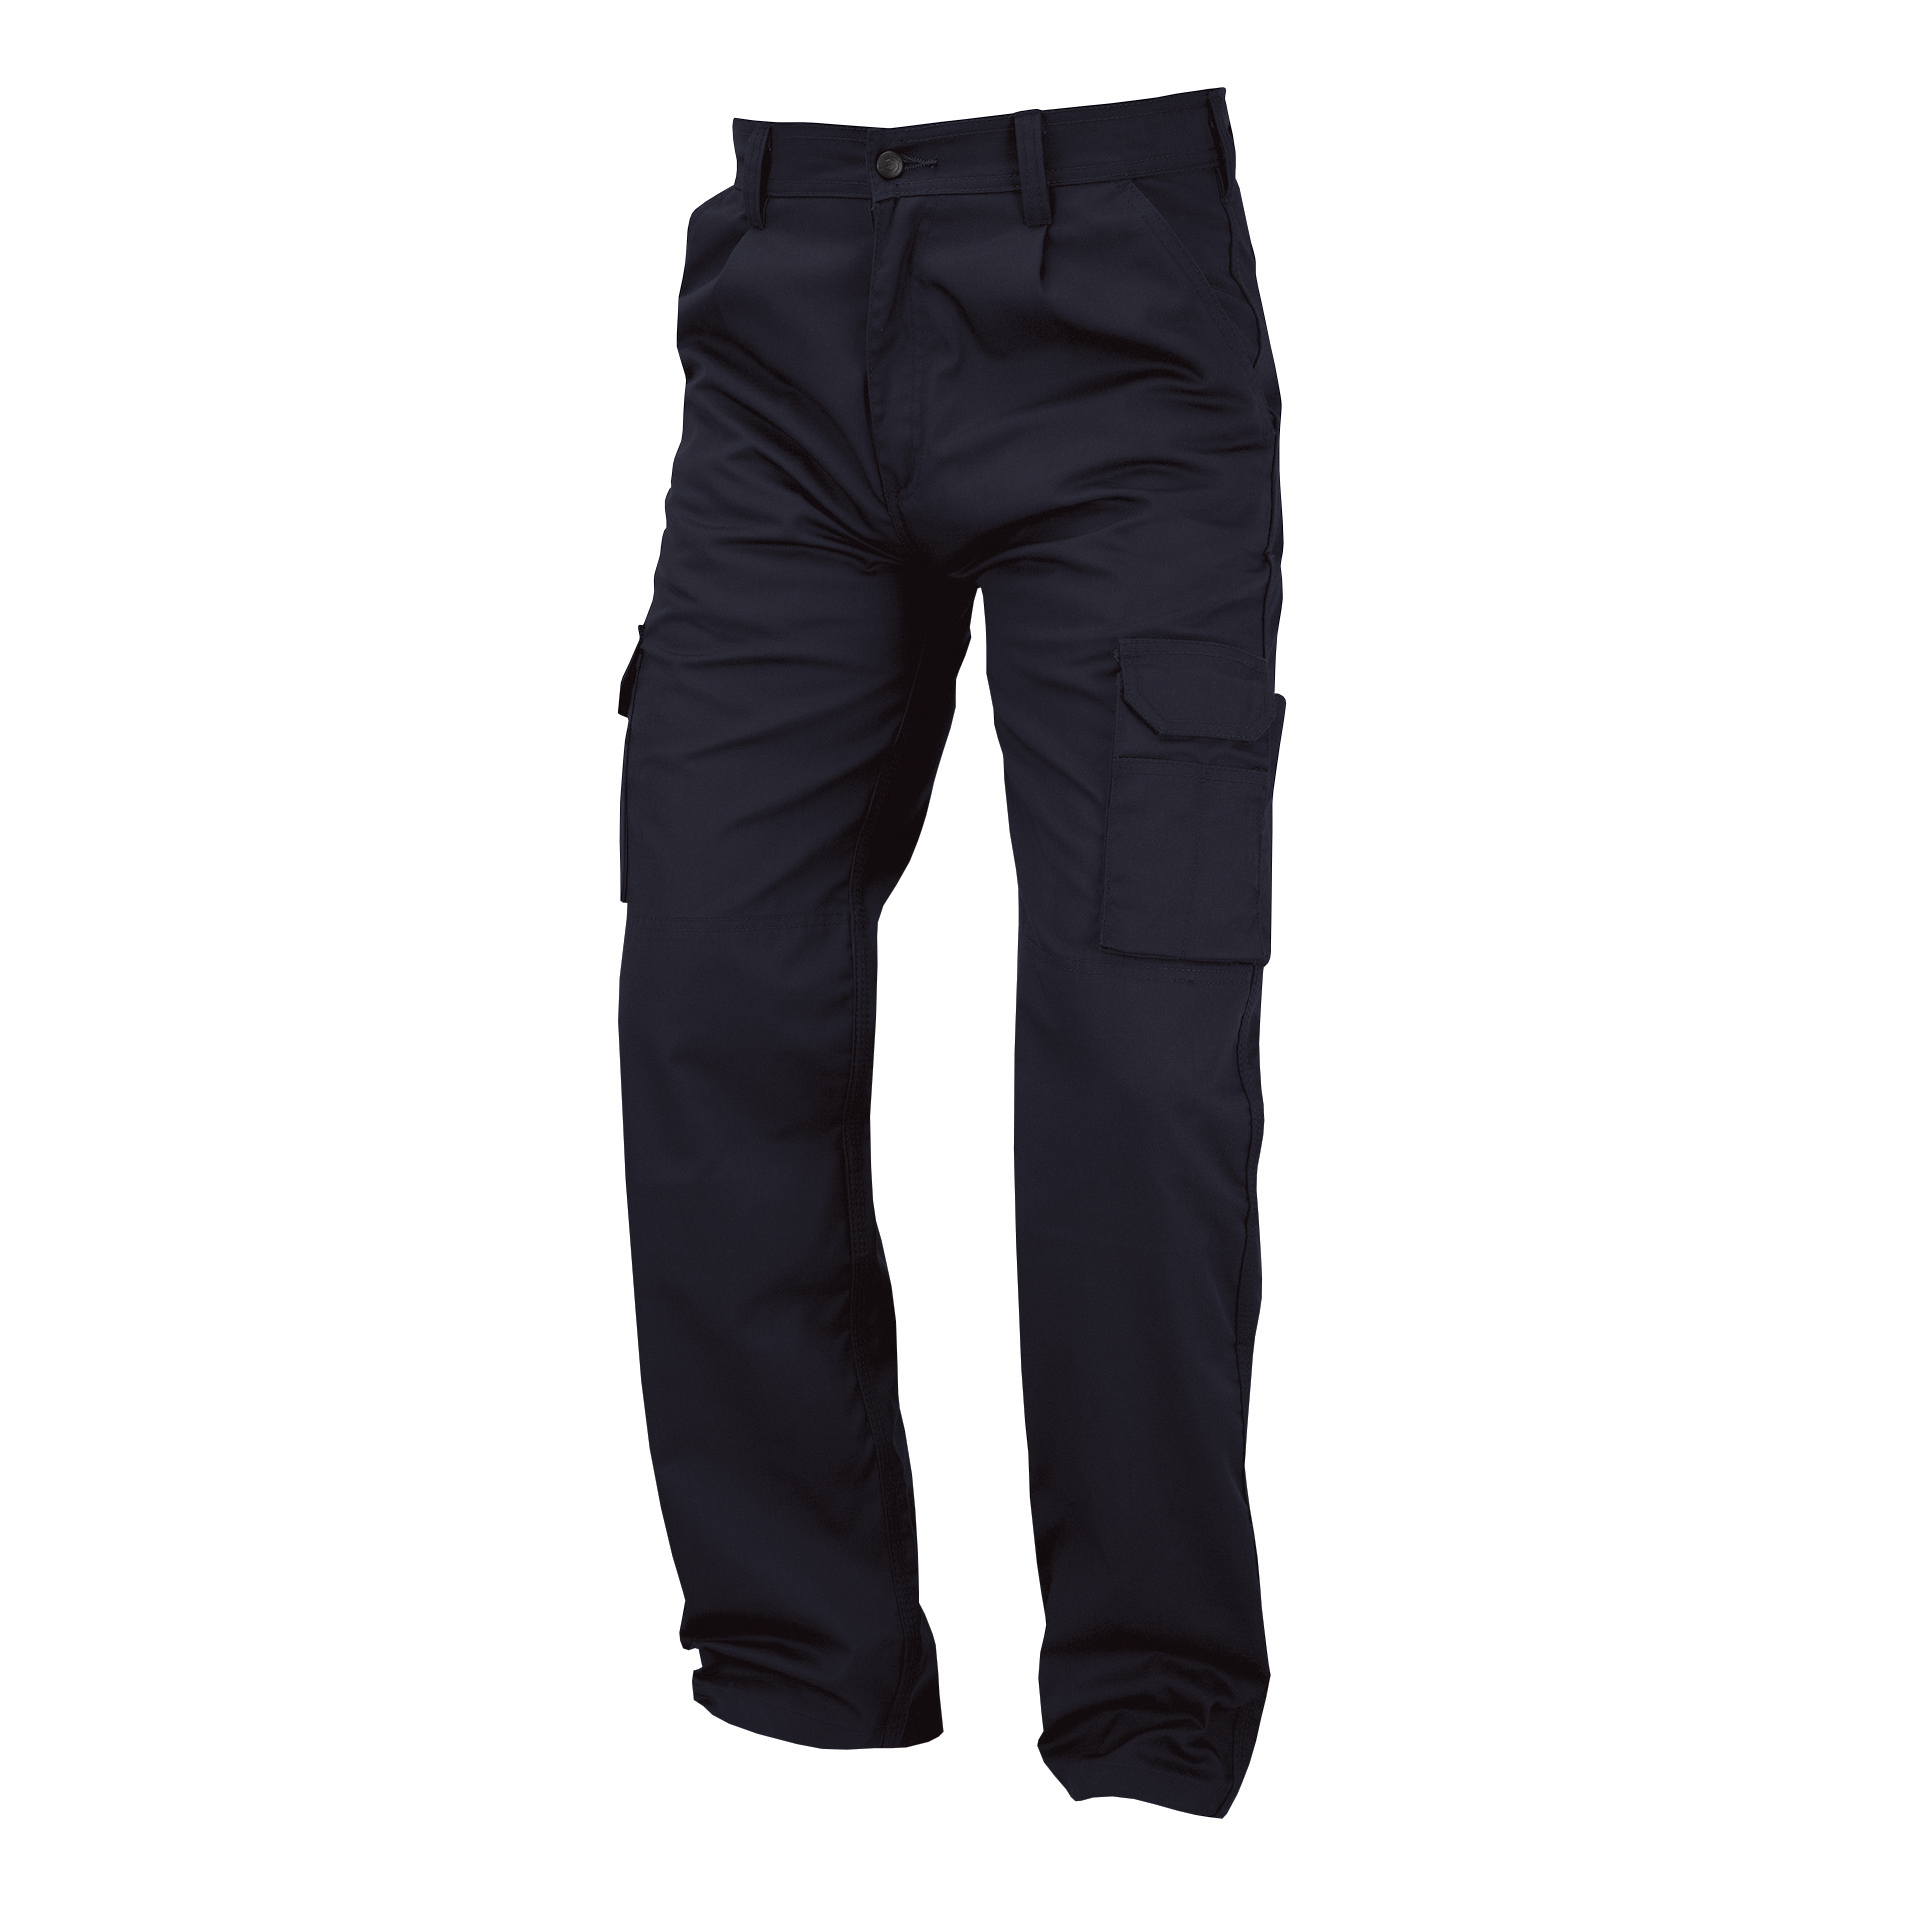 Kneepad Combat Trouser Multi-functional Waist 30in Leg 29in Navy Approx 3 Day Leadtime